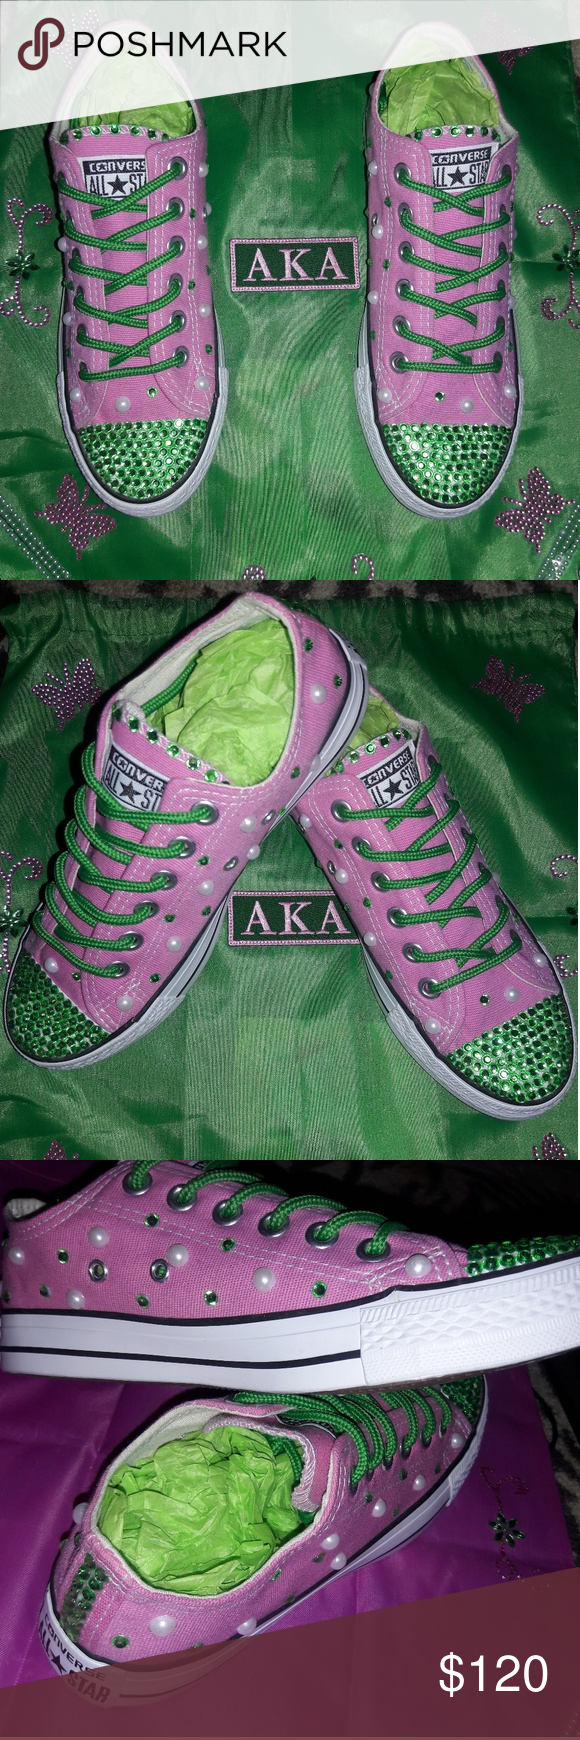 40b77abf87 Customized ALPHA KAPPA ALPHA